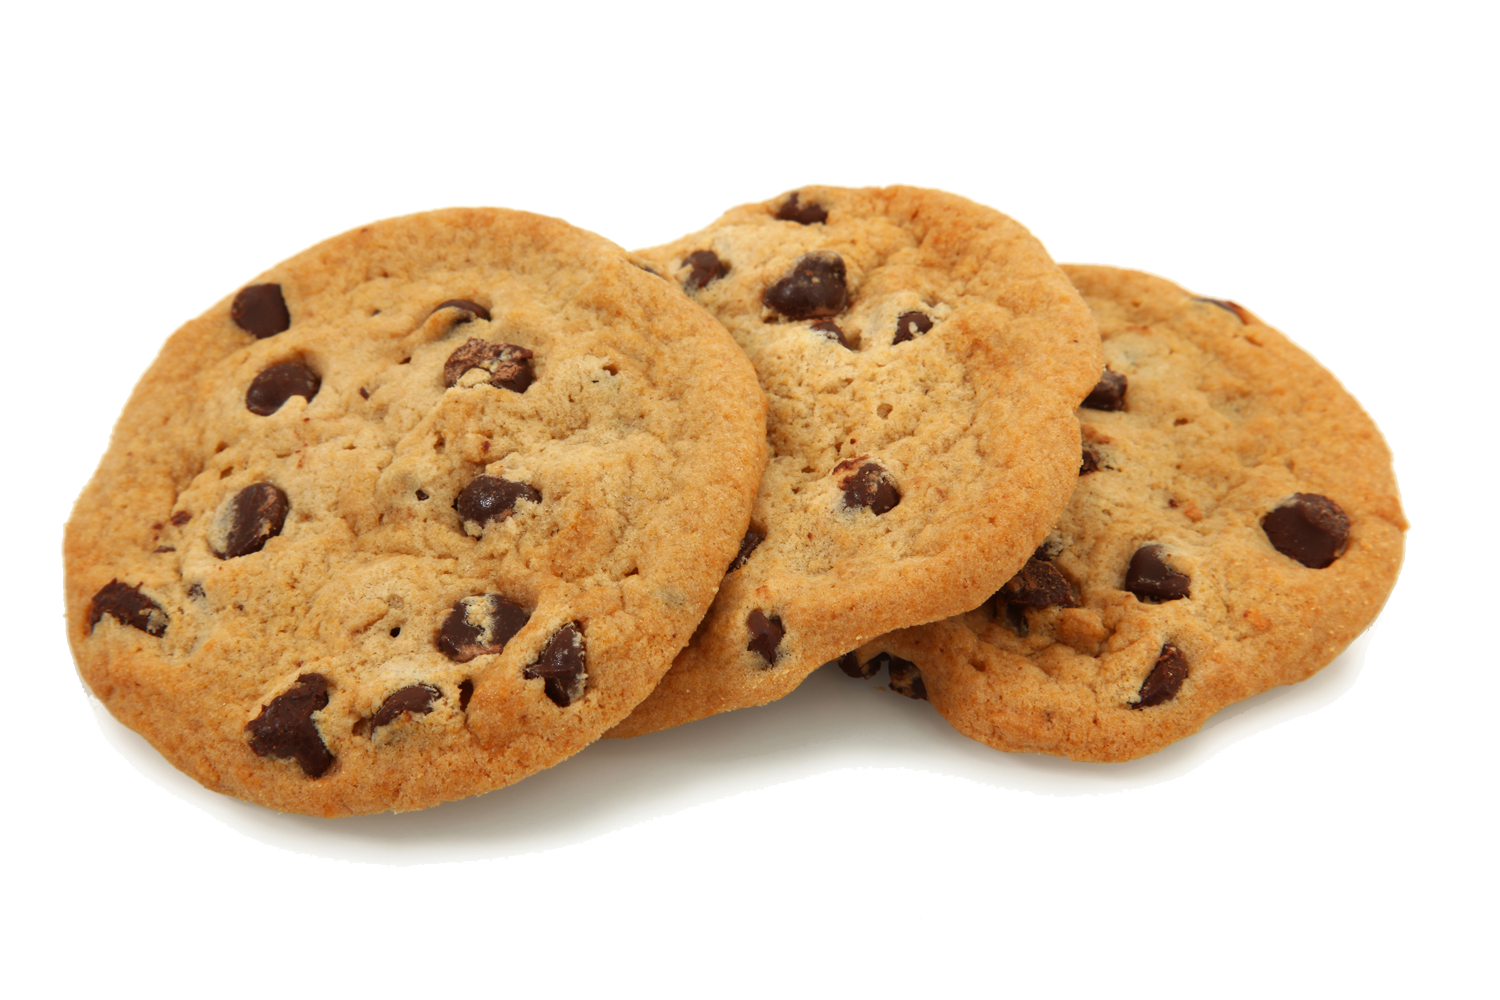 clip free download Cookies transparent. Cookie png images all